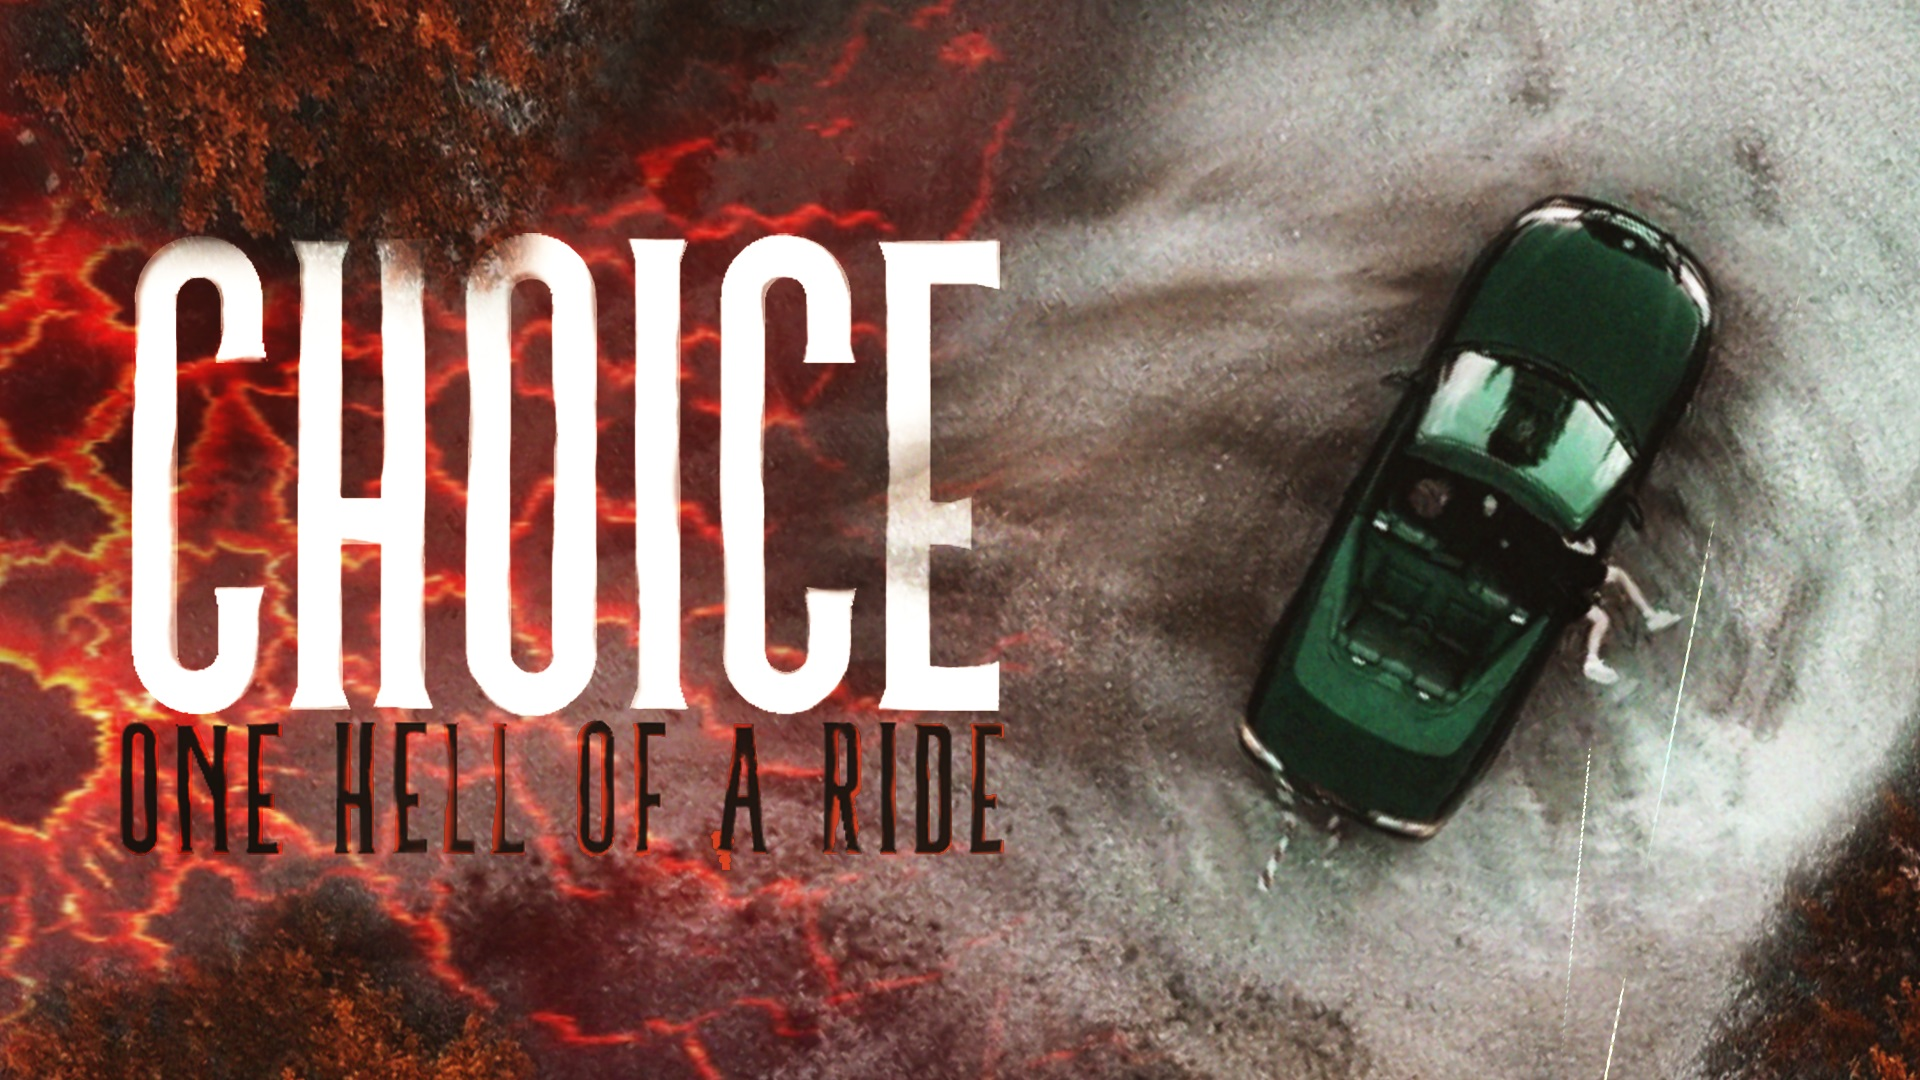 THE CHOICE - One HELL of a ride  - Short Action Drama